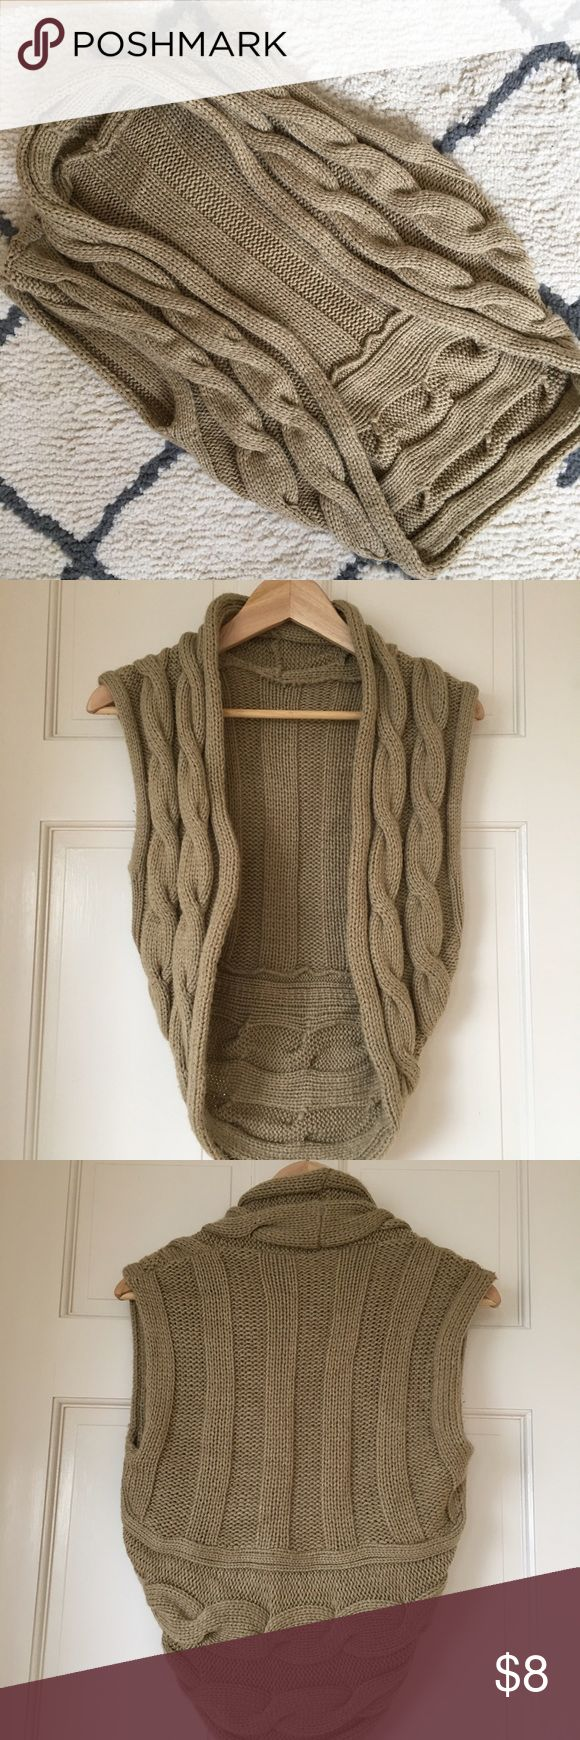 Cropped Cable Knit Camel Vest Sz Small Never worn, in pristine condition. Purchased from Target, original owner, non-smoking home. No snags or pilling. Tops